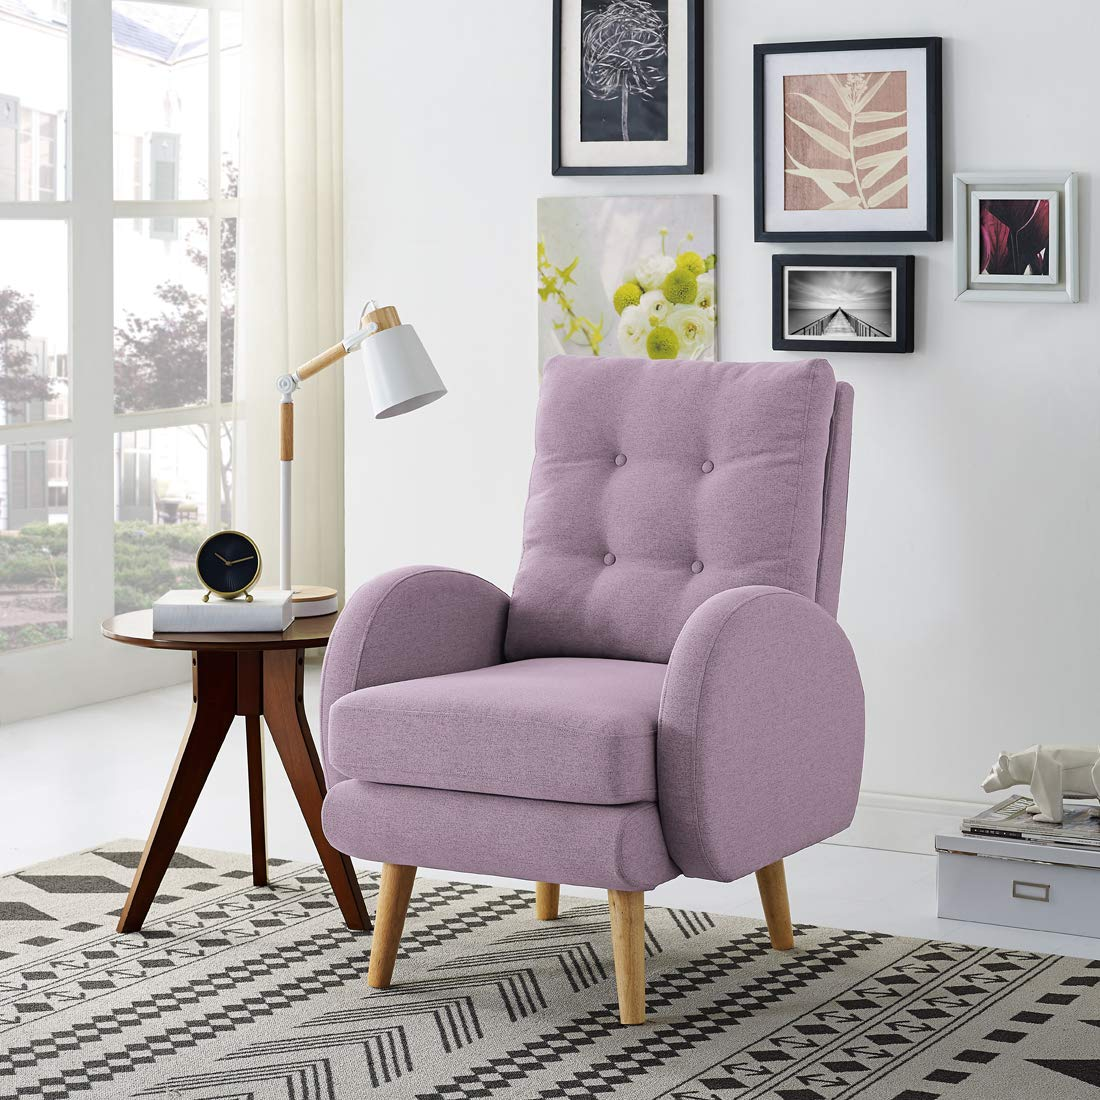 Lohoms Mid-Century Modern Accent Chair Tufted Button Fabric Uphlostered Curved Arm Chair Comfy High Back Chair Single Sofa (Purple) by Lohoms